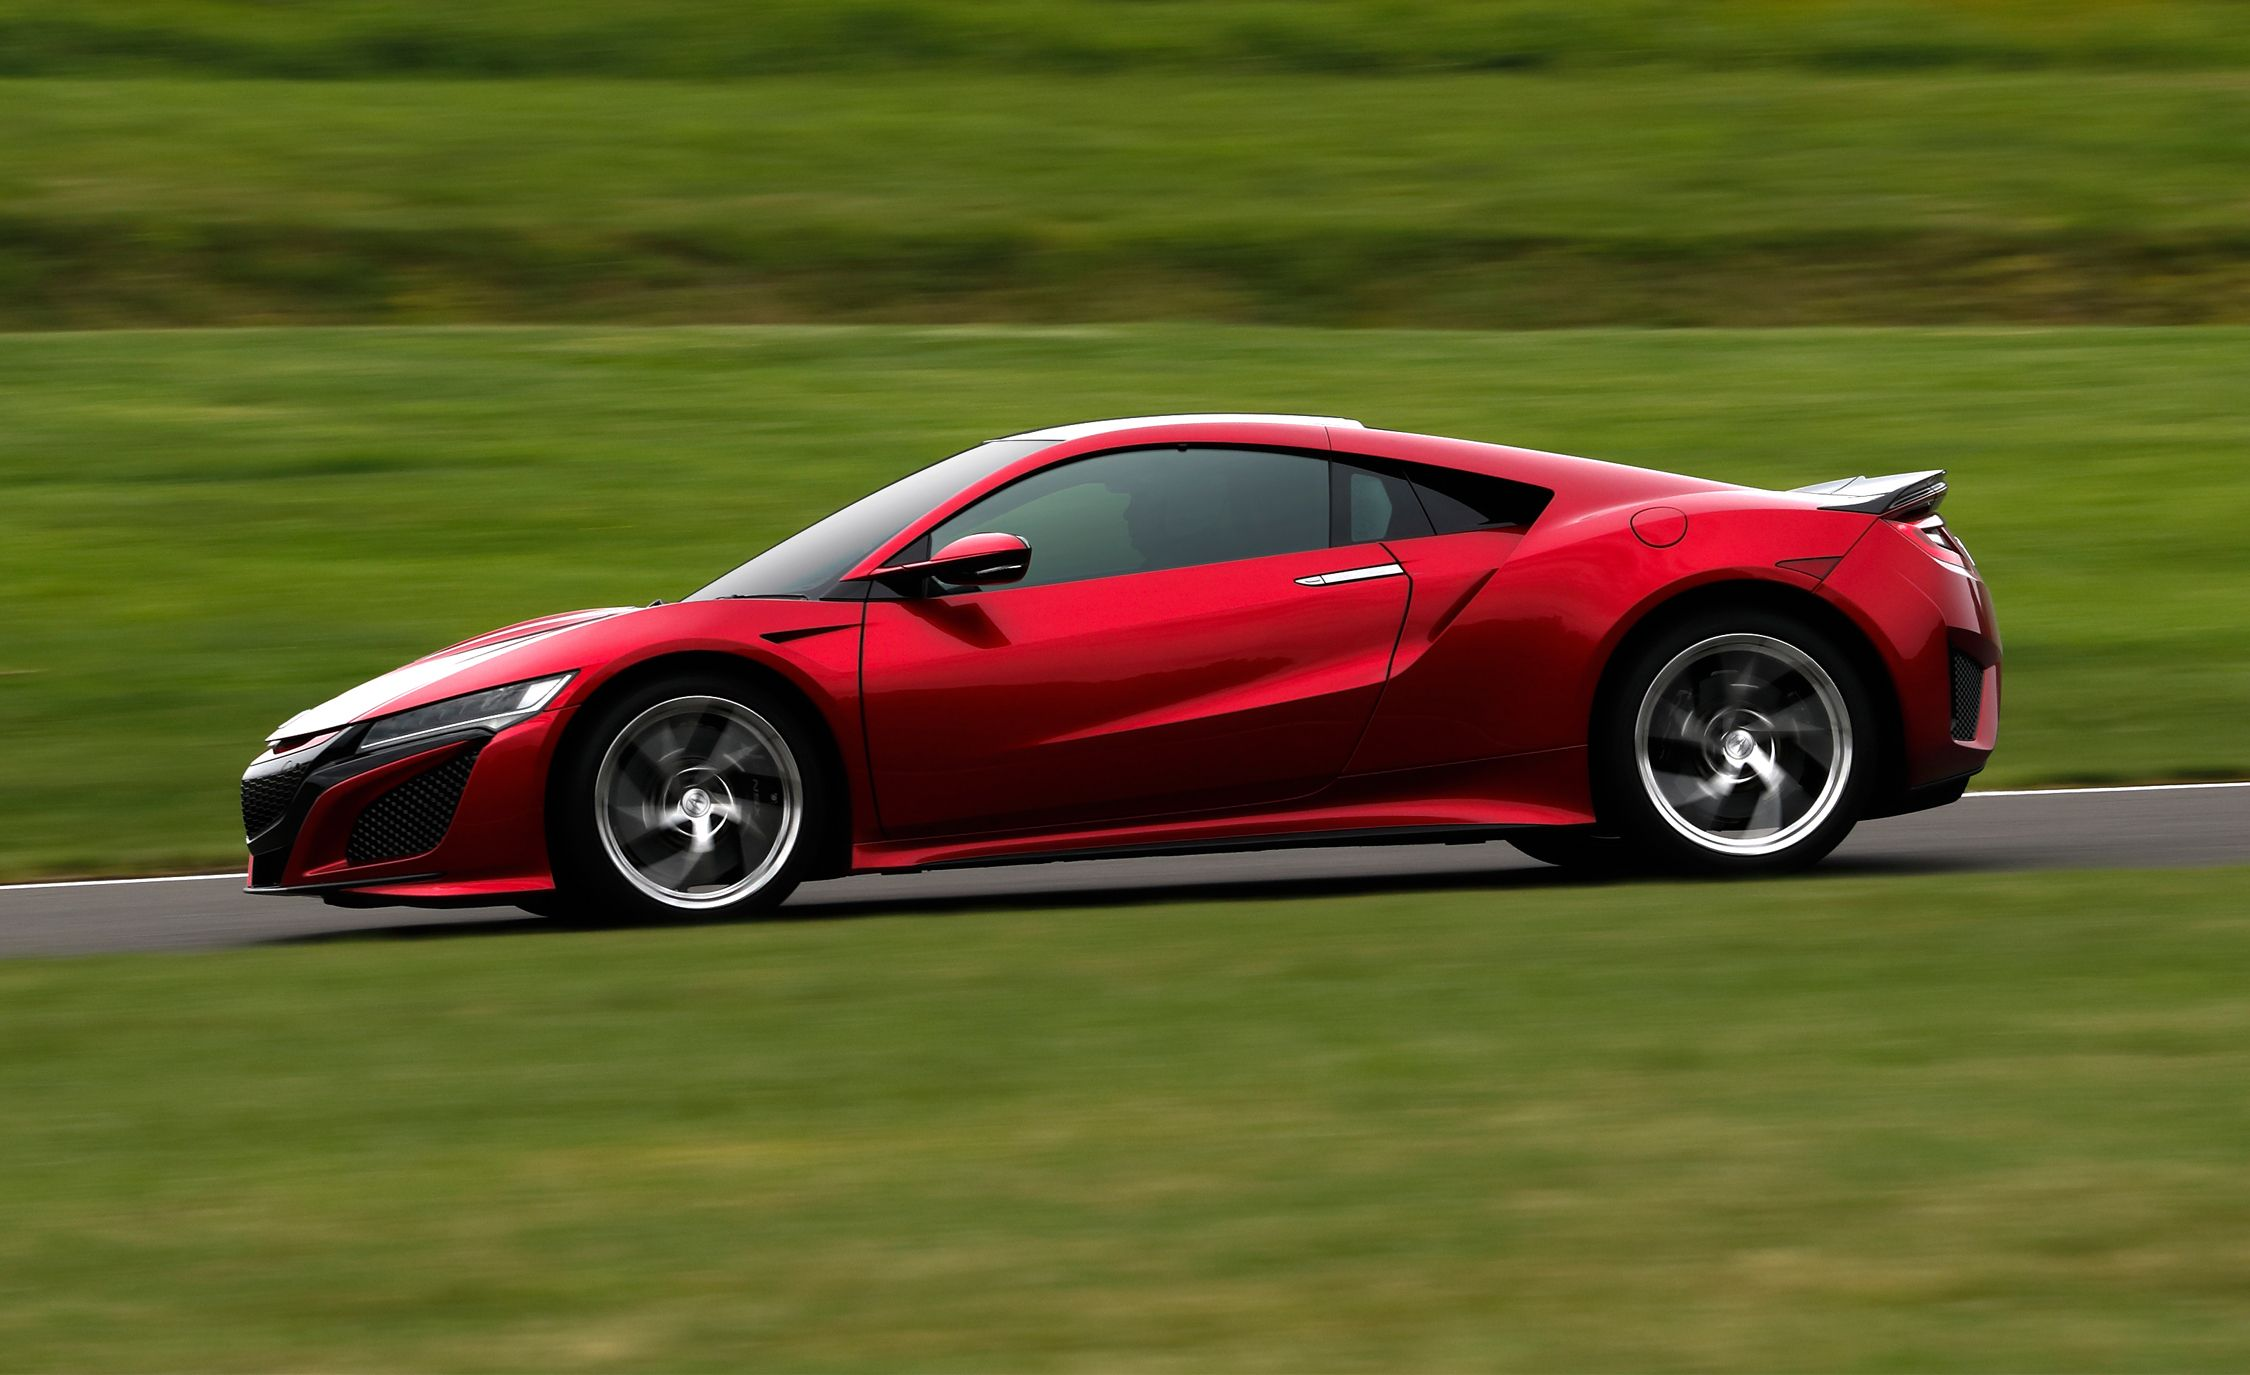 2019 Acura NSX – A Hybrid Supercar with Manners